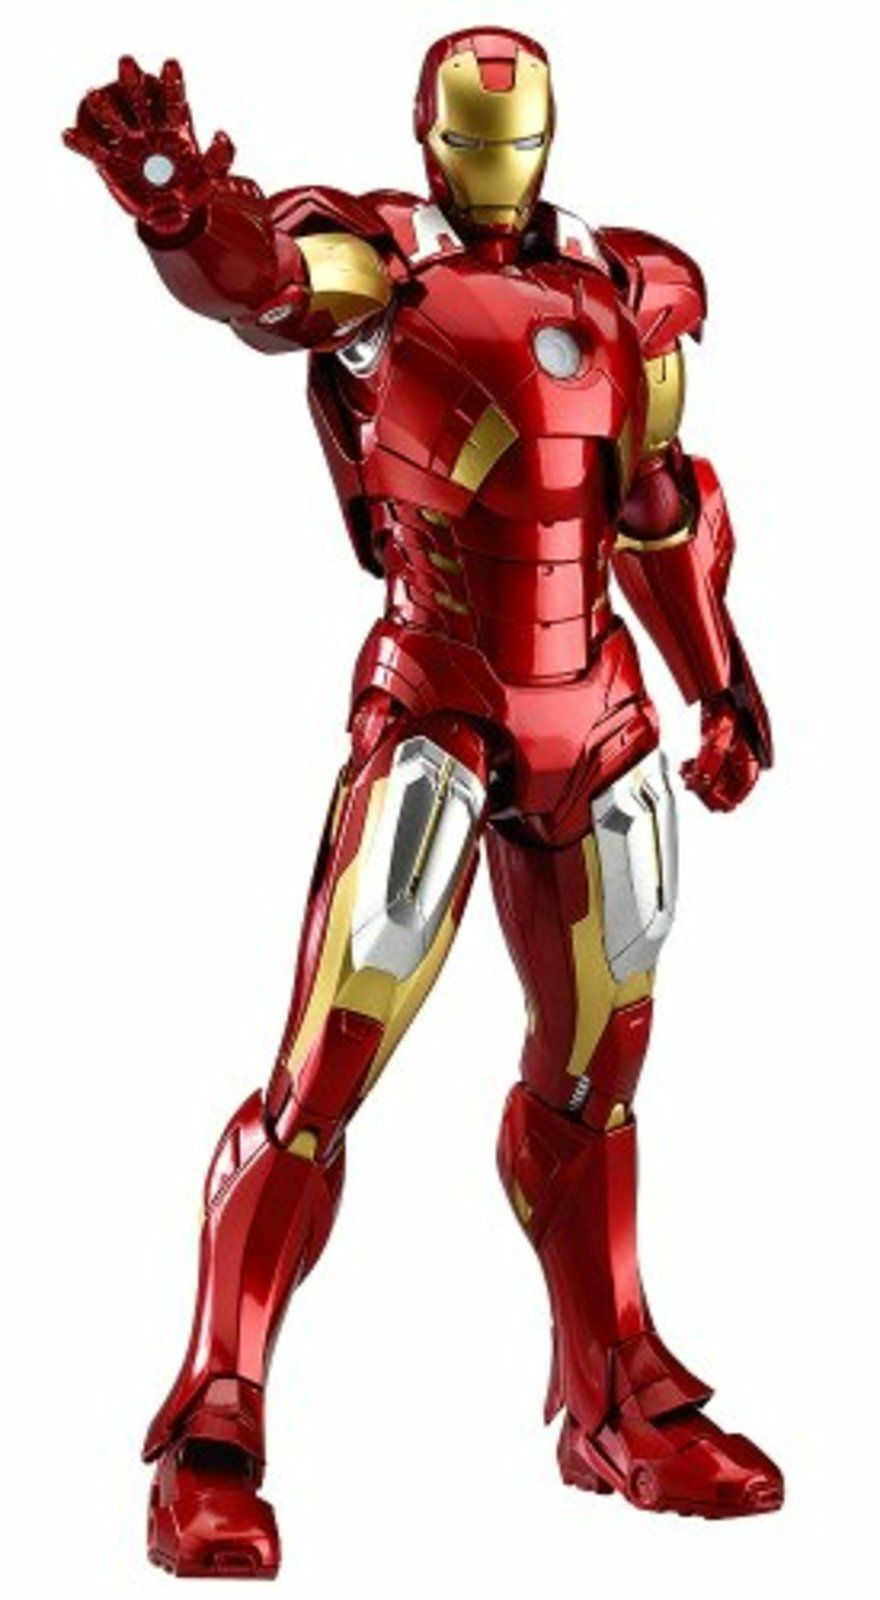 Good Smile The Avengers: Iron Man Mark VII Figma Action Figure F/S